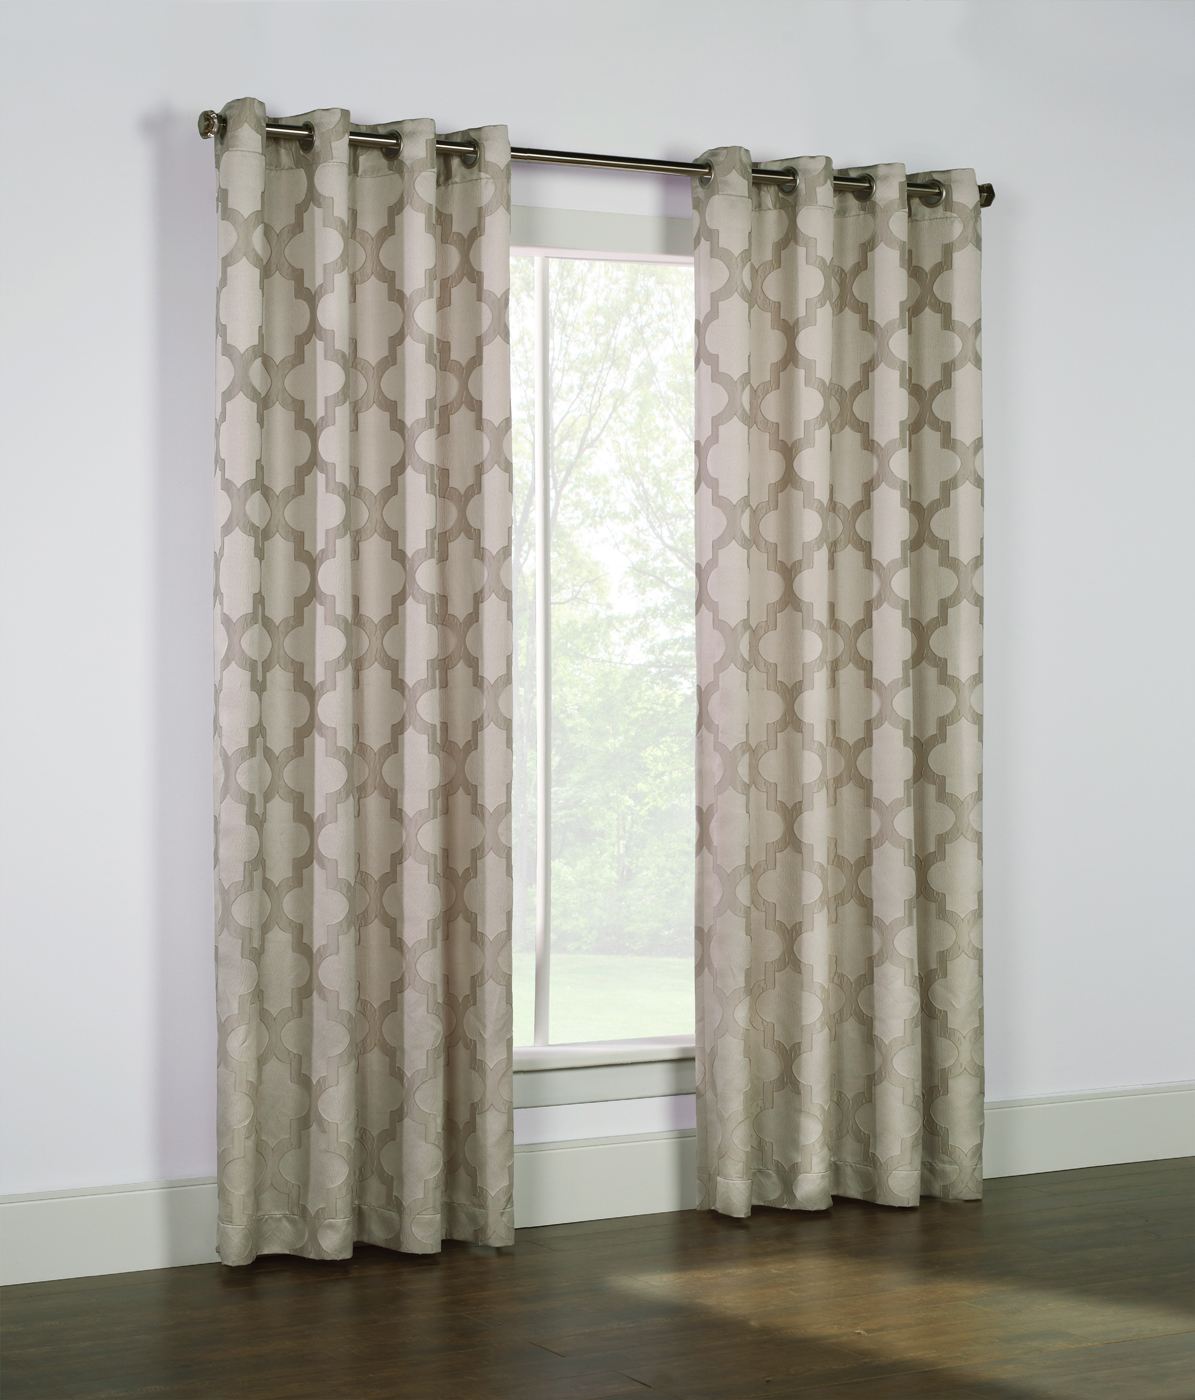 ball double curtains india online satin buy decowindow in curtain silver rod